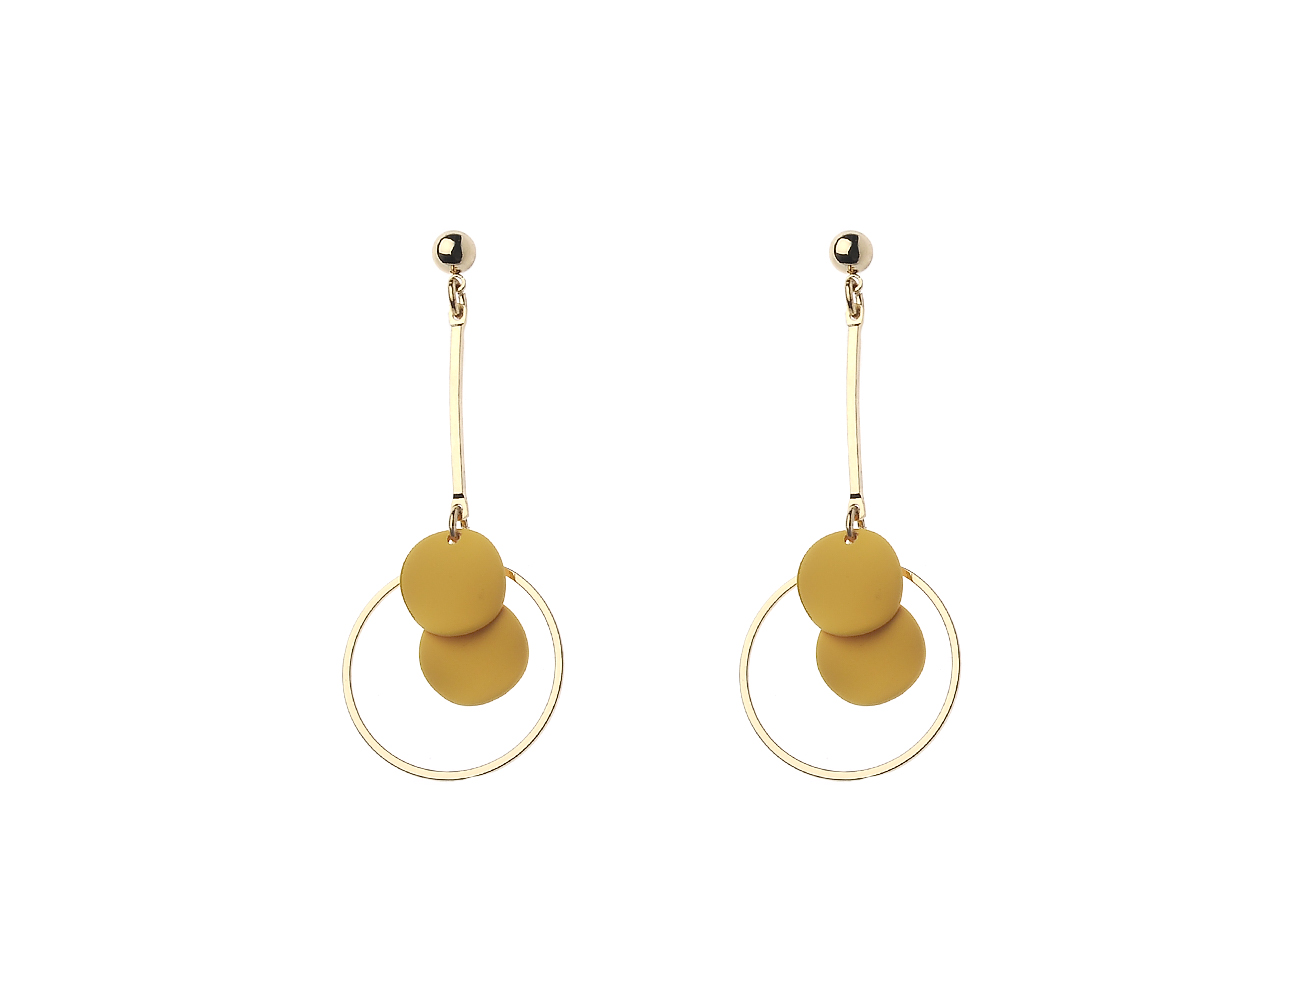 Gold Stick And Circle Earring With Wavy Yellow Disc Details